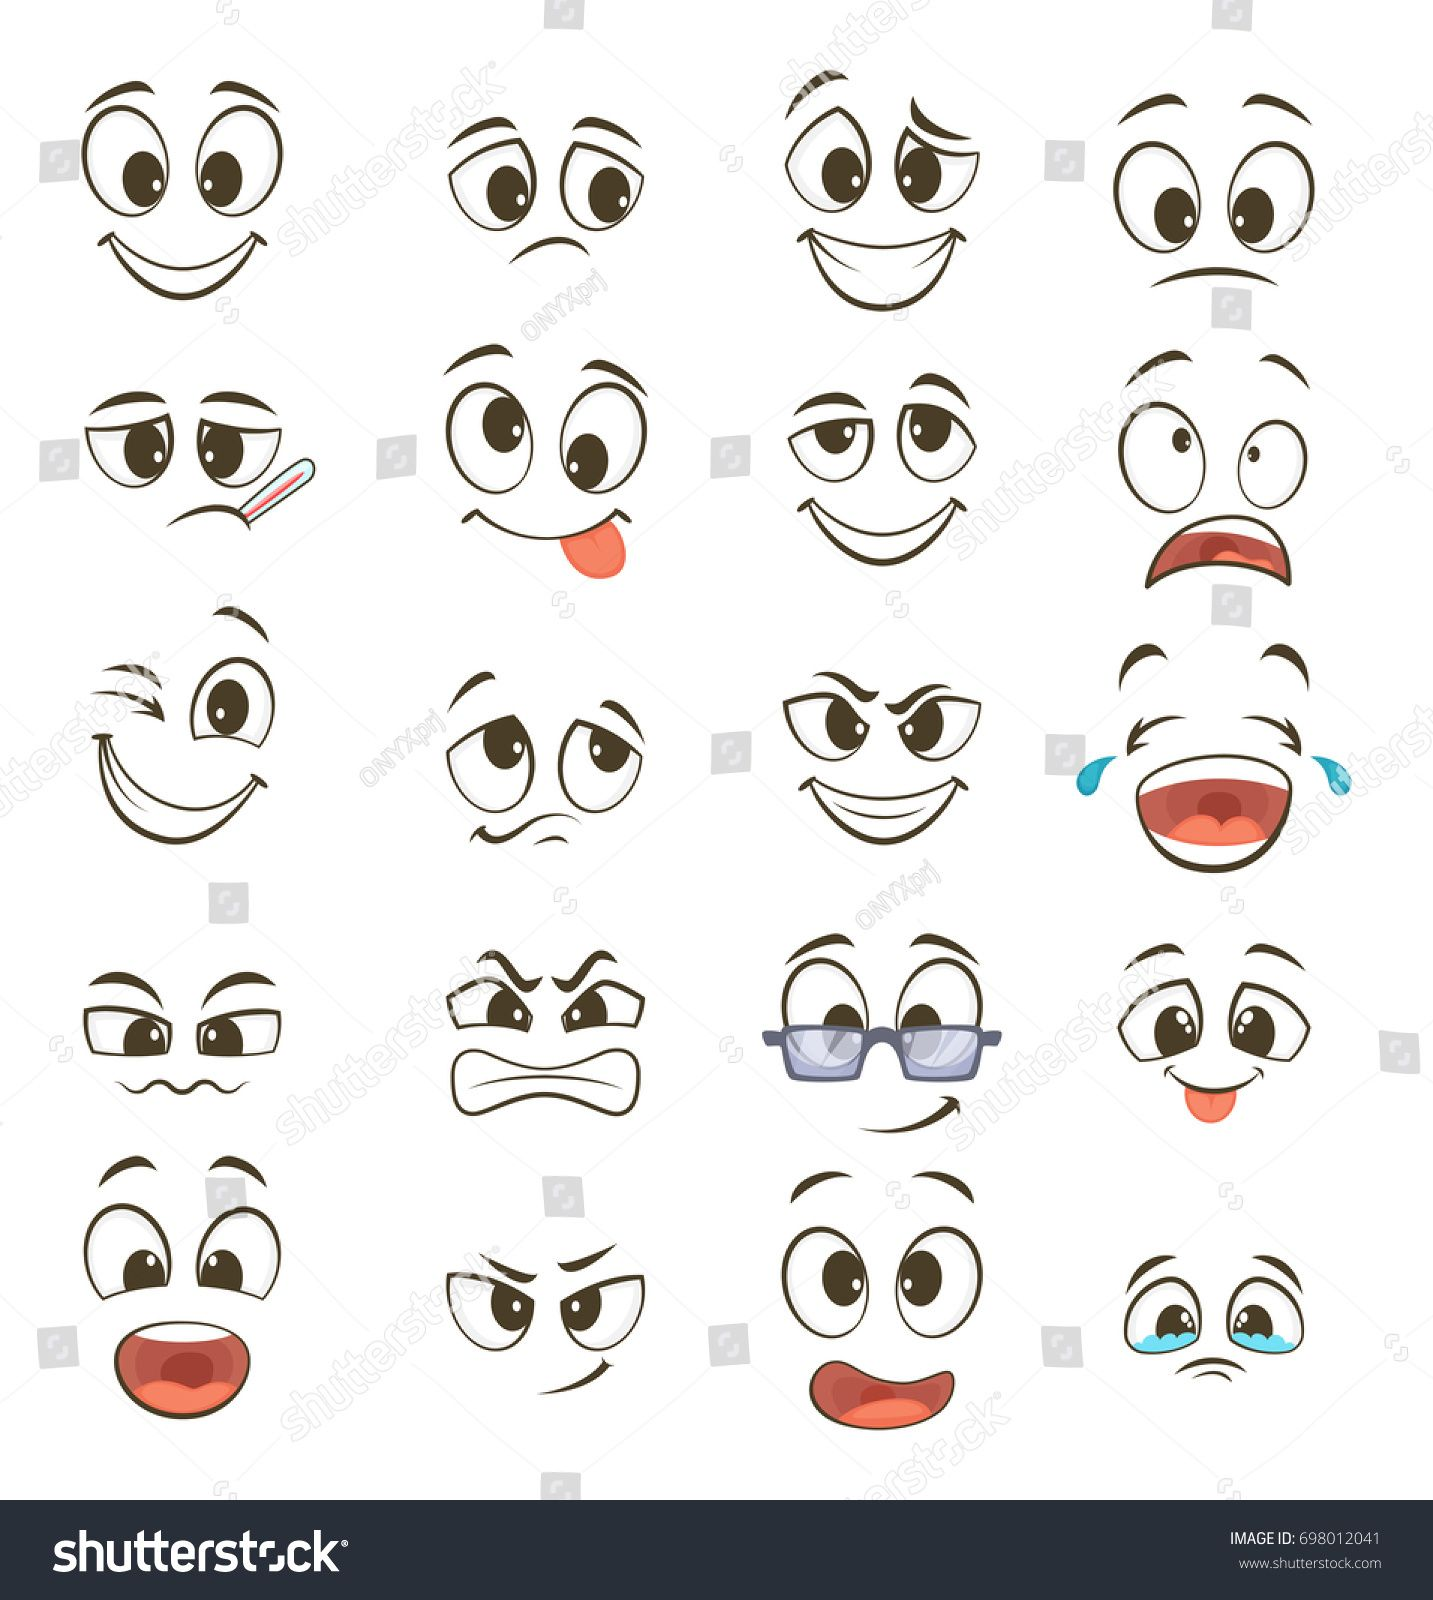 Cartoon Happy Faces With Different Expressions Illustration Happy Face Emotion Funny Character Emoticon Car Dessin Smiley Illustration De Visage Yeux Dessin